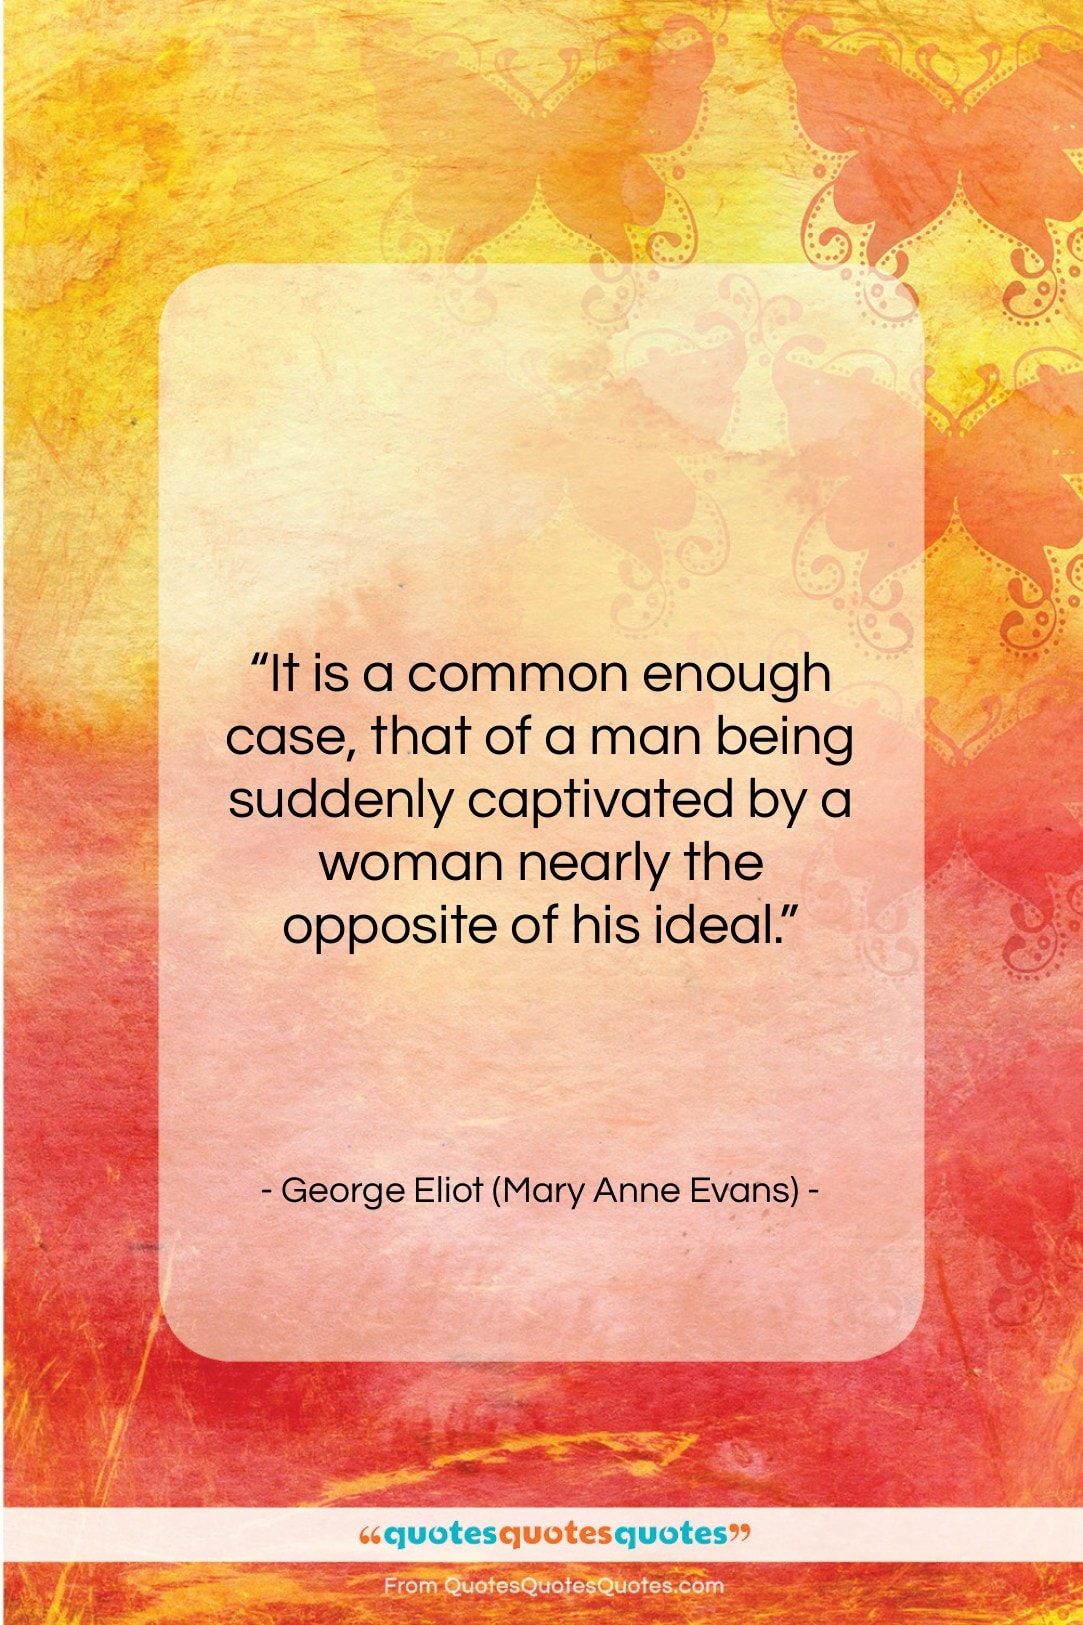 """George Eliot (Mary Anne Evans) quote: """"It is a common enough case, that…""""- at QuotesQuotesQuotes.com"""